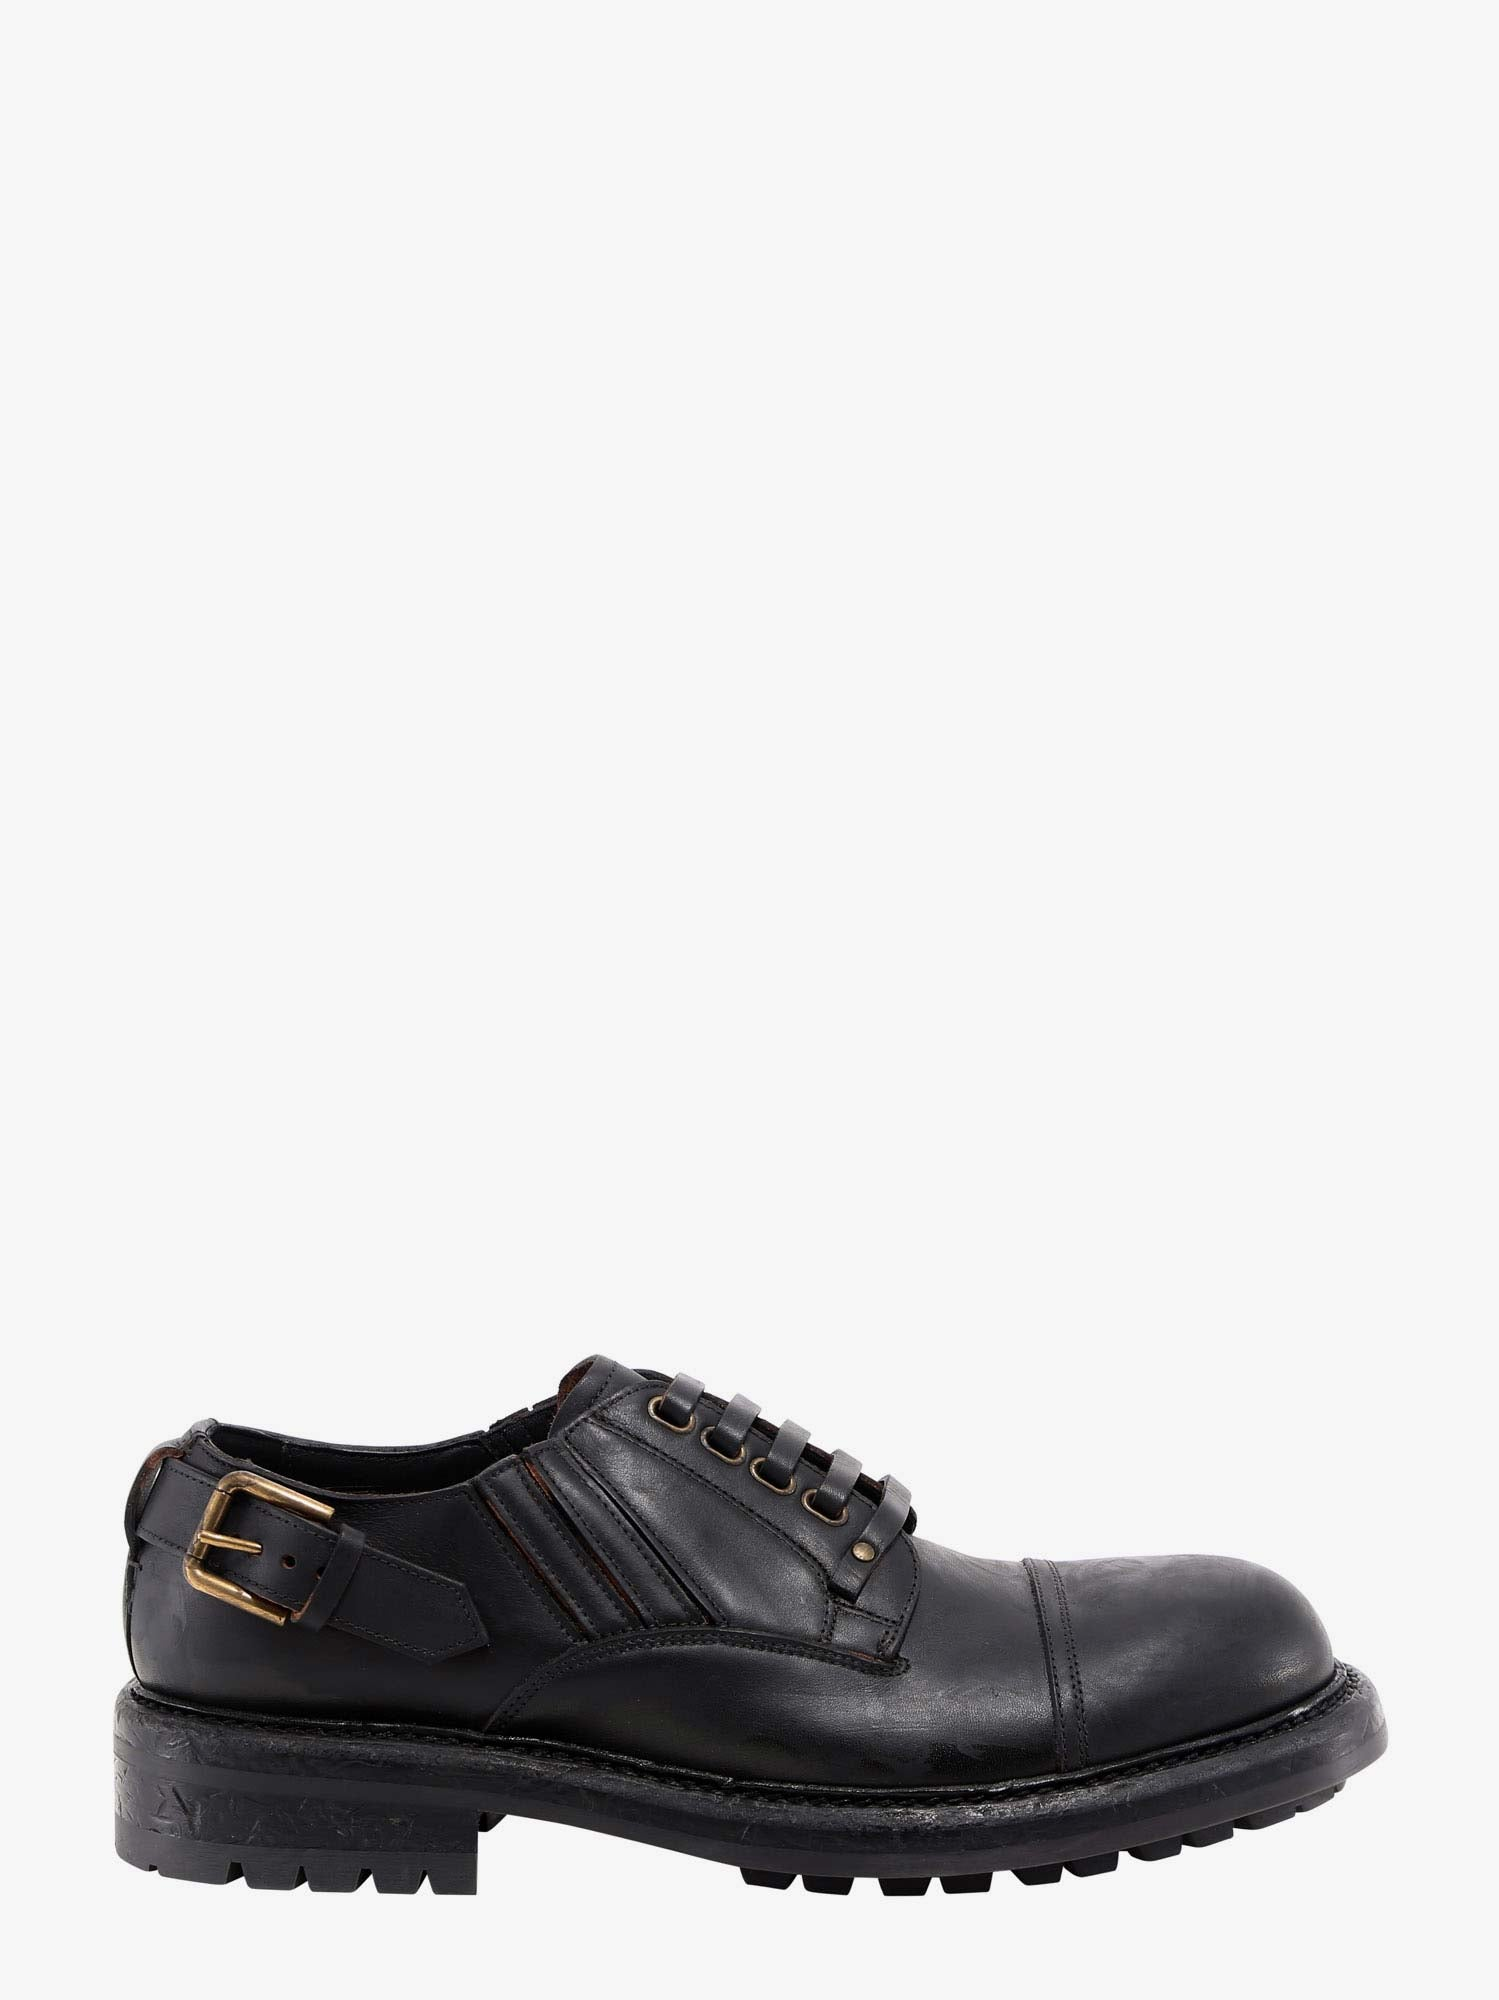 Dolce & Gabbana Leathers LACE-UP